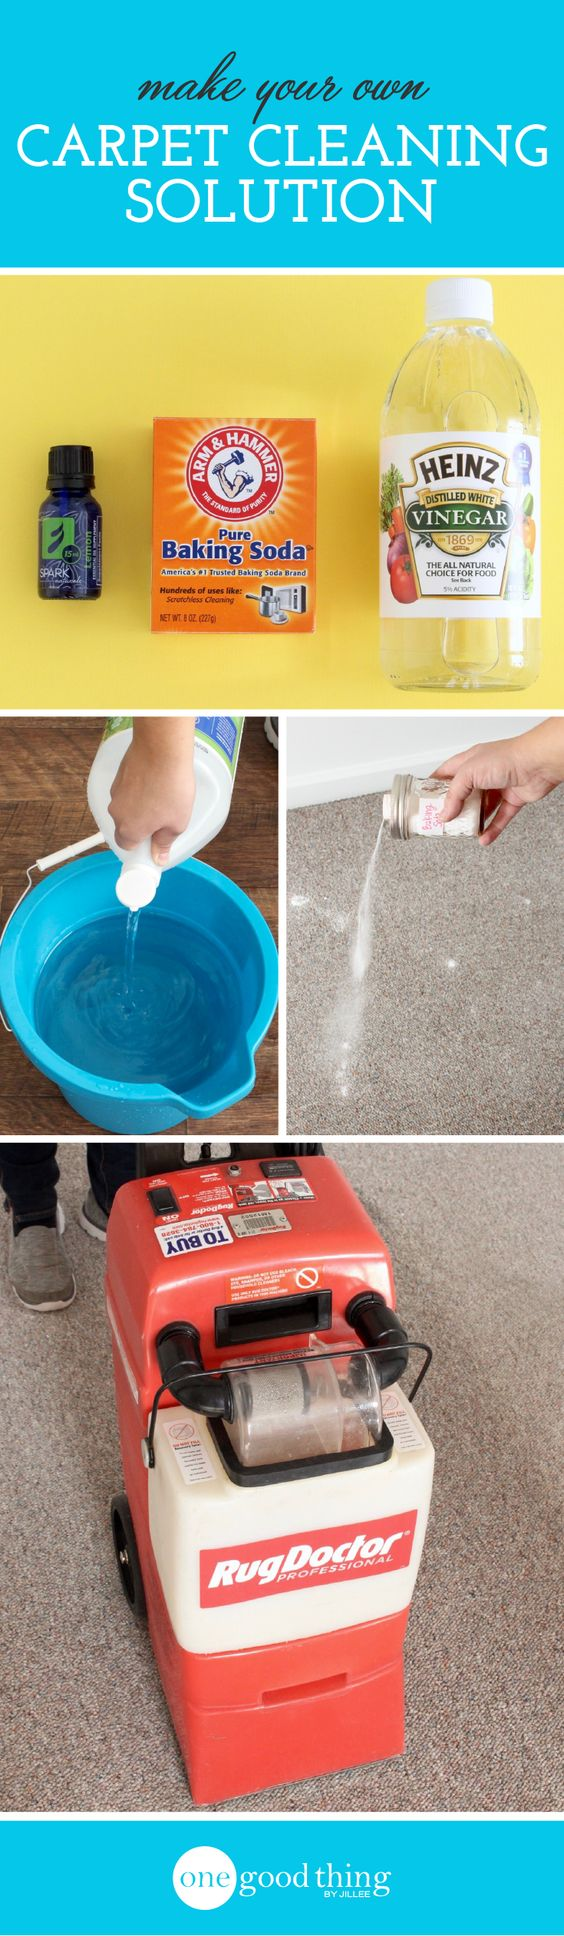 Best 25 homemade carpet shampoo ideas only on pinterest shampoo carpet diy carpet cleaning and homemade carpet cleaners